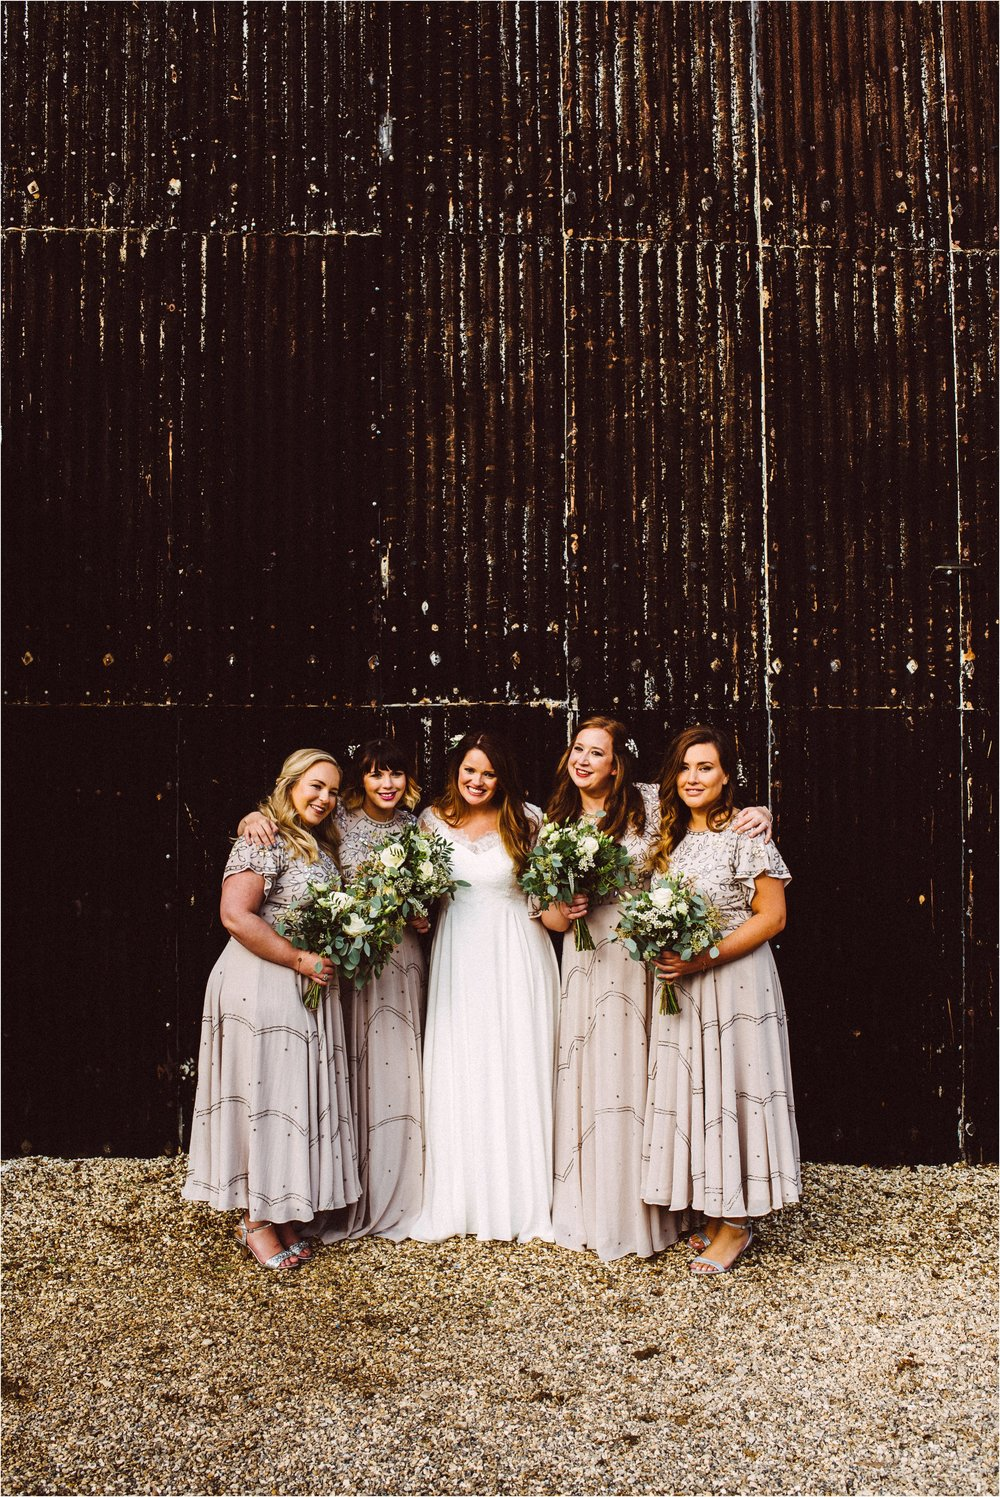 Cripps Barn wedding photographer_0121.jpg